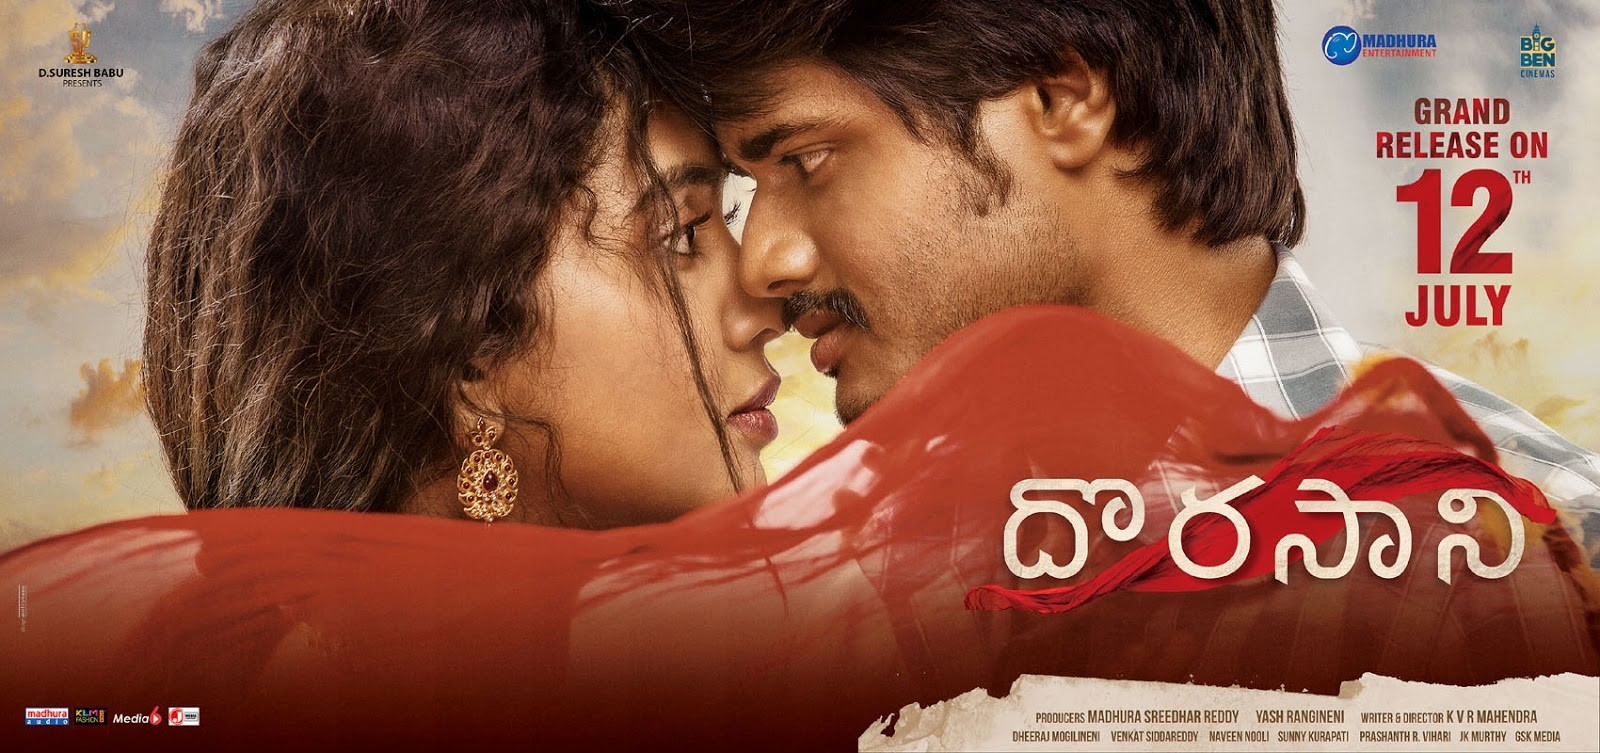 Shivathmika, Anand Deverakonda in Dorasani Movie Release on July 12th Posters